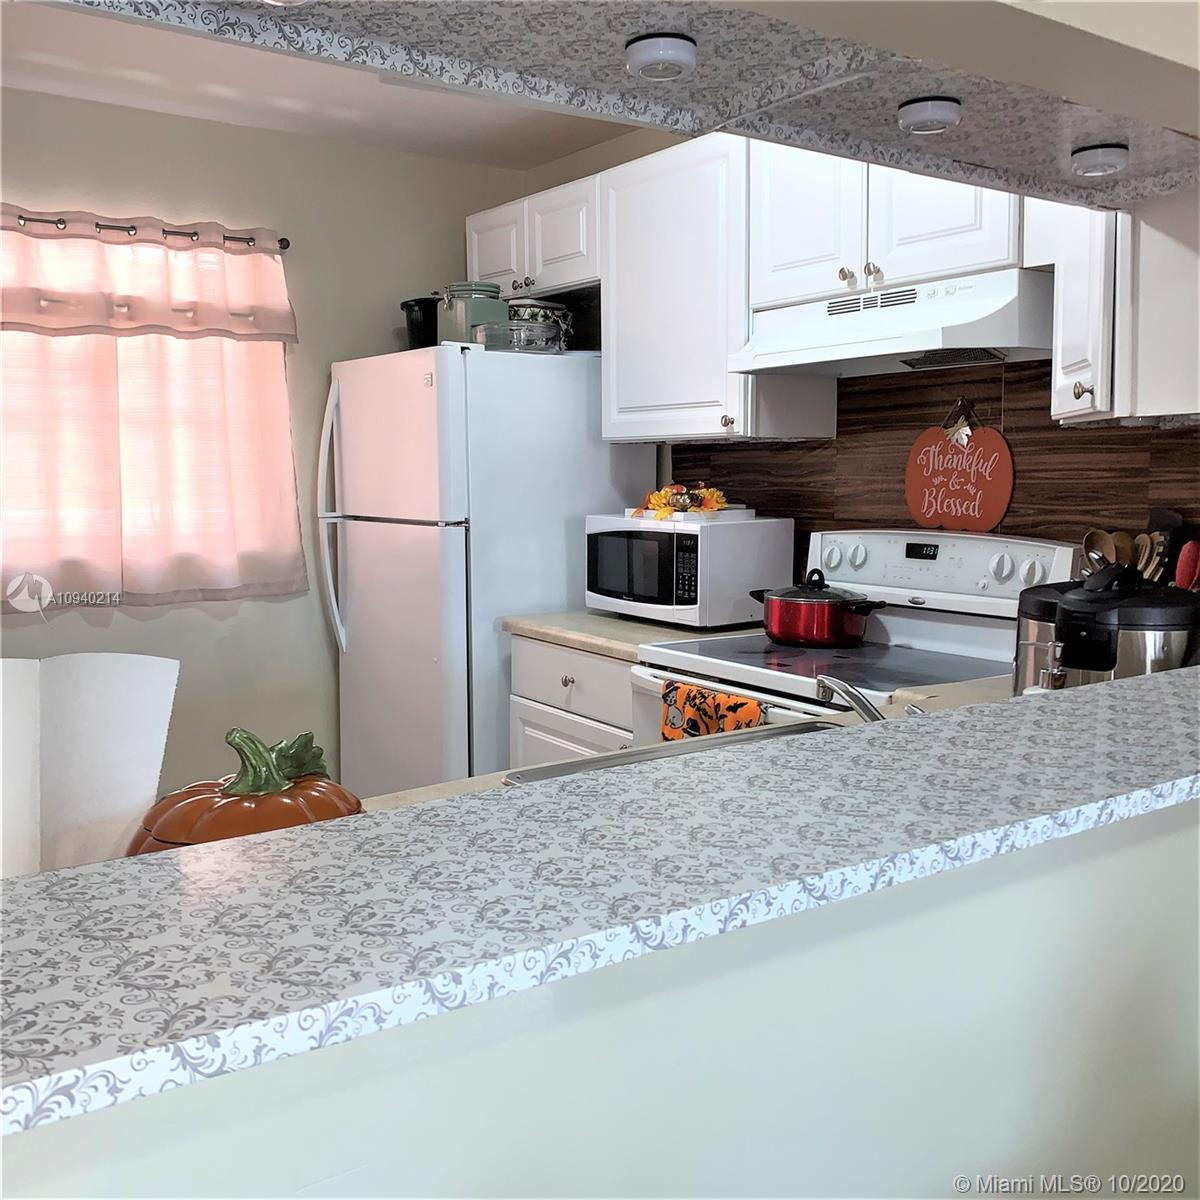 Great for investors 2 bedrooms 2 bathrooms, Balcony with a storage room 800 SQ FT freshly paint, all tile throughout, corner unit tenant occupied with contract to 07/31/2021 paying $1,250.00 with last and 1-month security good condition